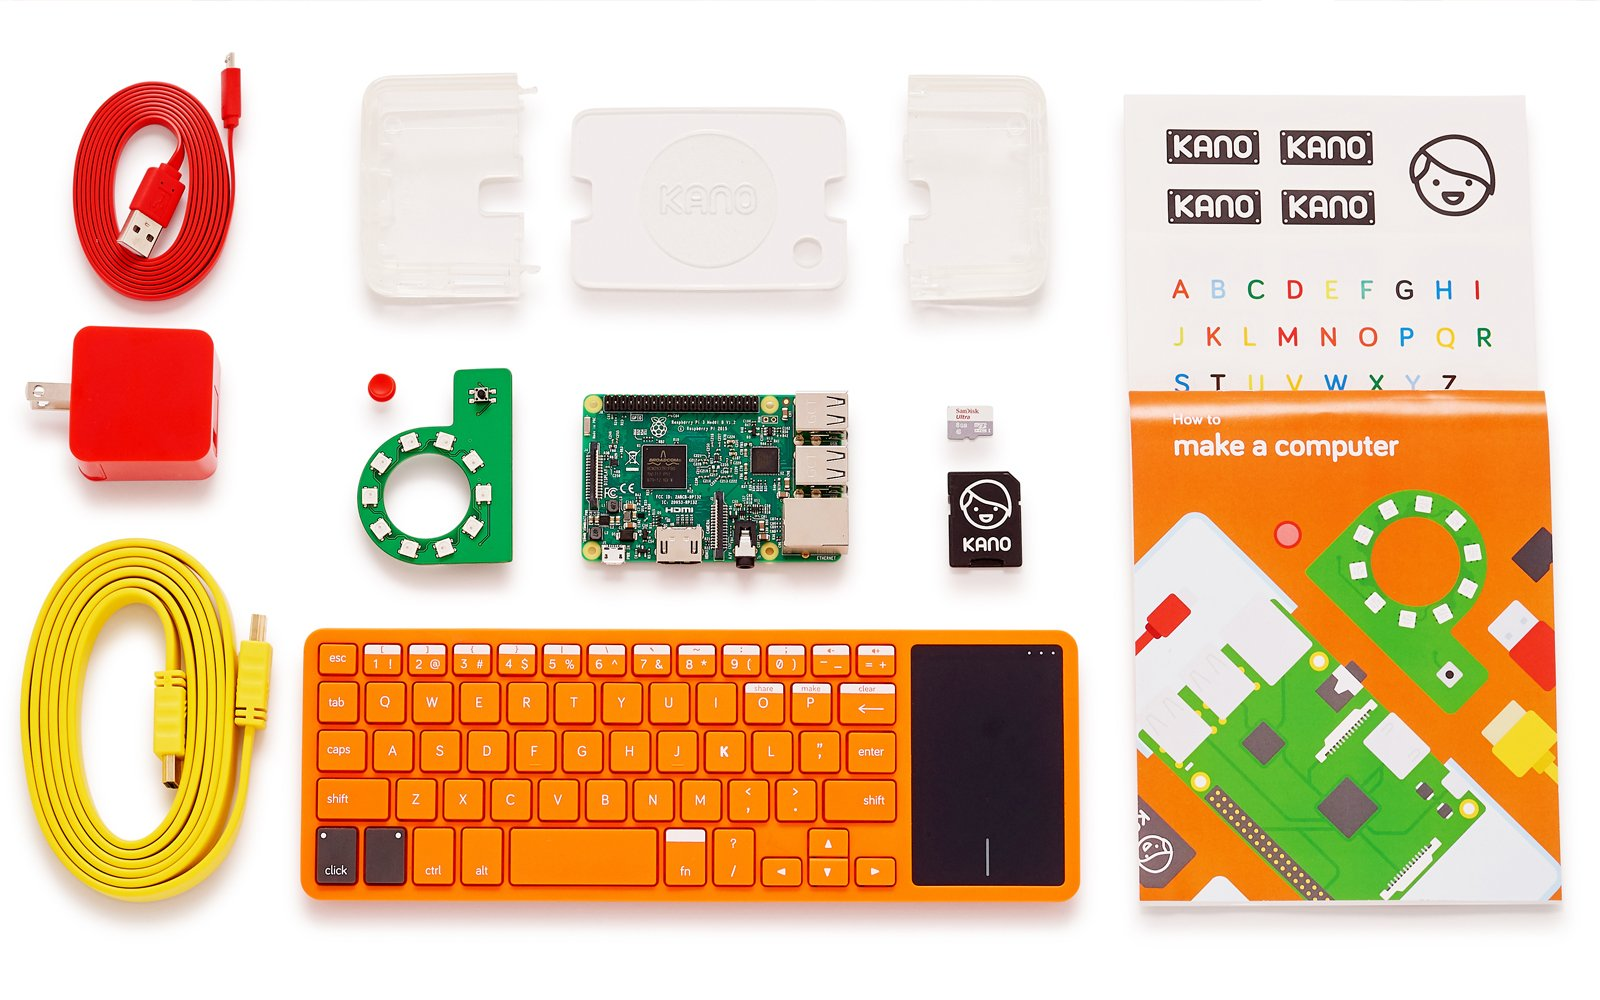 'Kano Computer Kit 2017 – Make a computer, learn to code by Kano (Image #7)